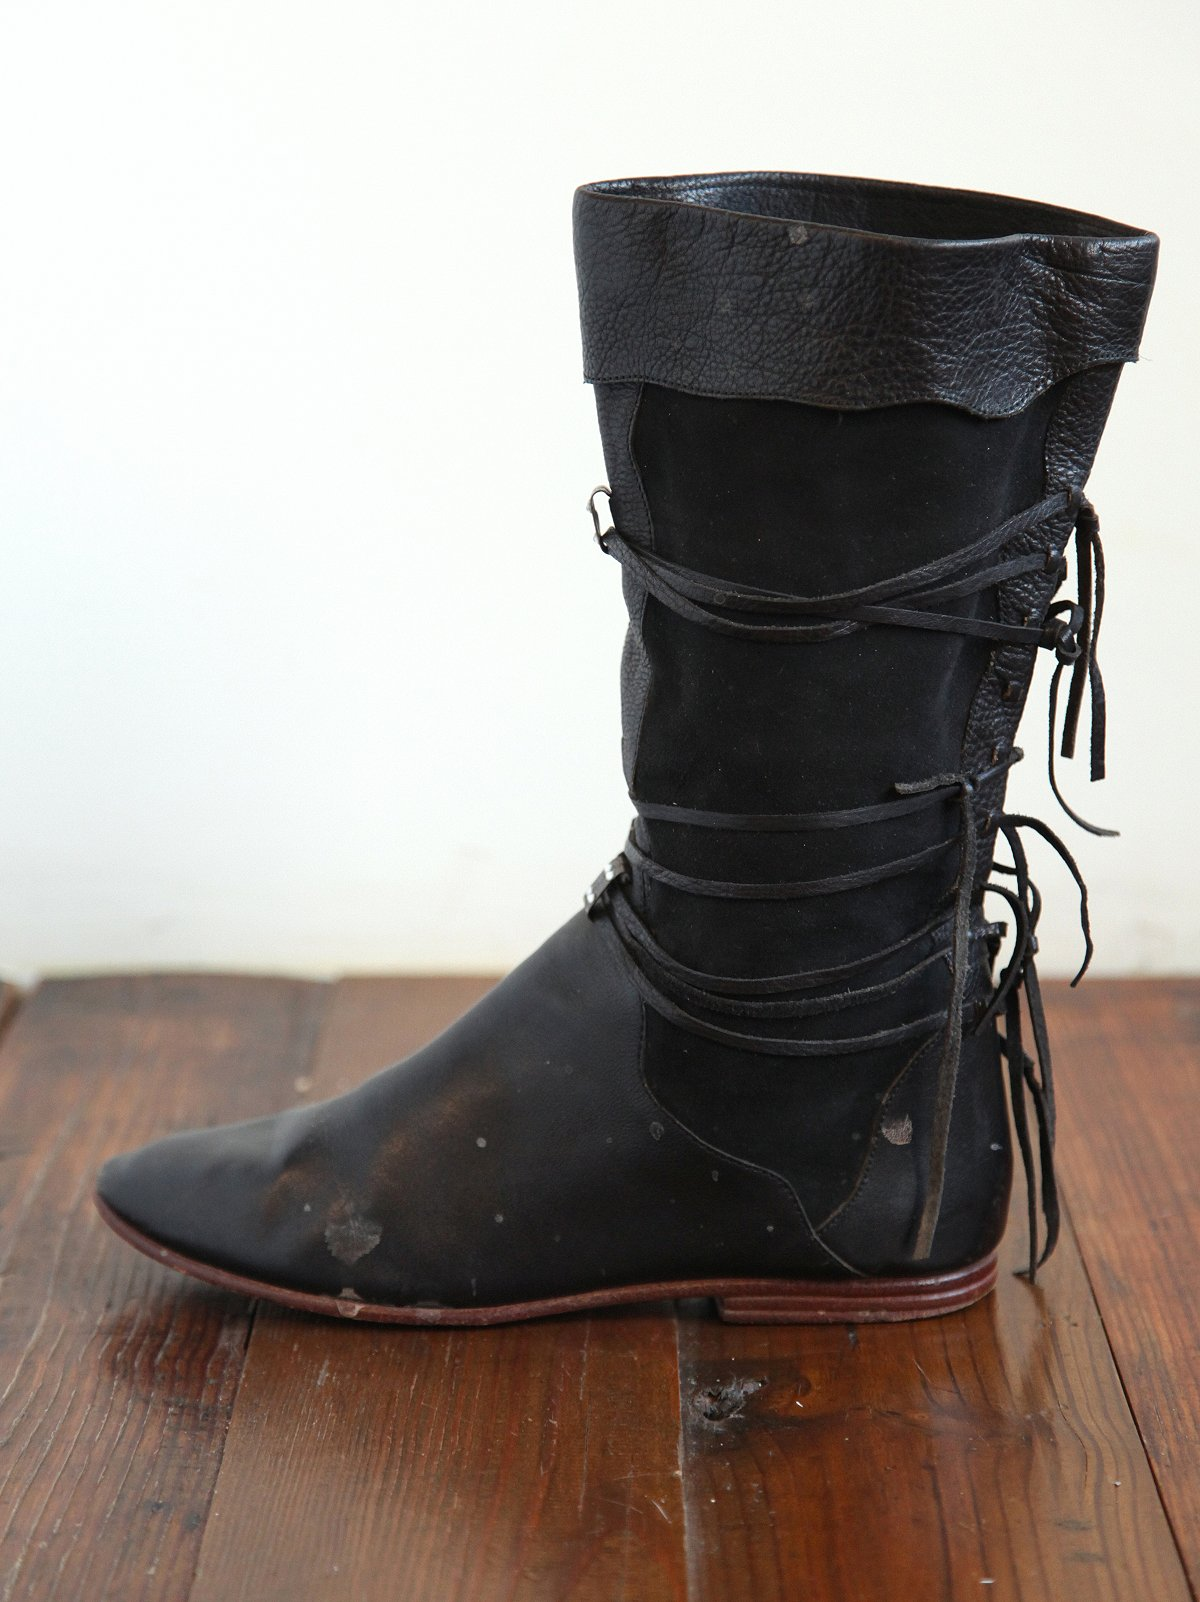 Vintage Black Leather Fringe Boots